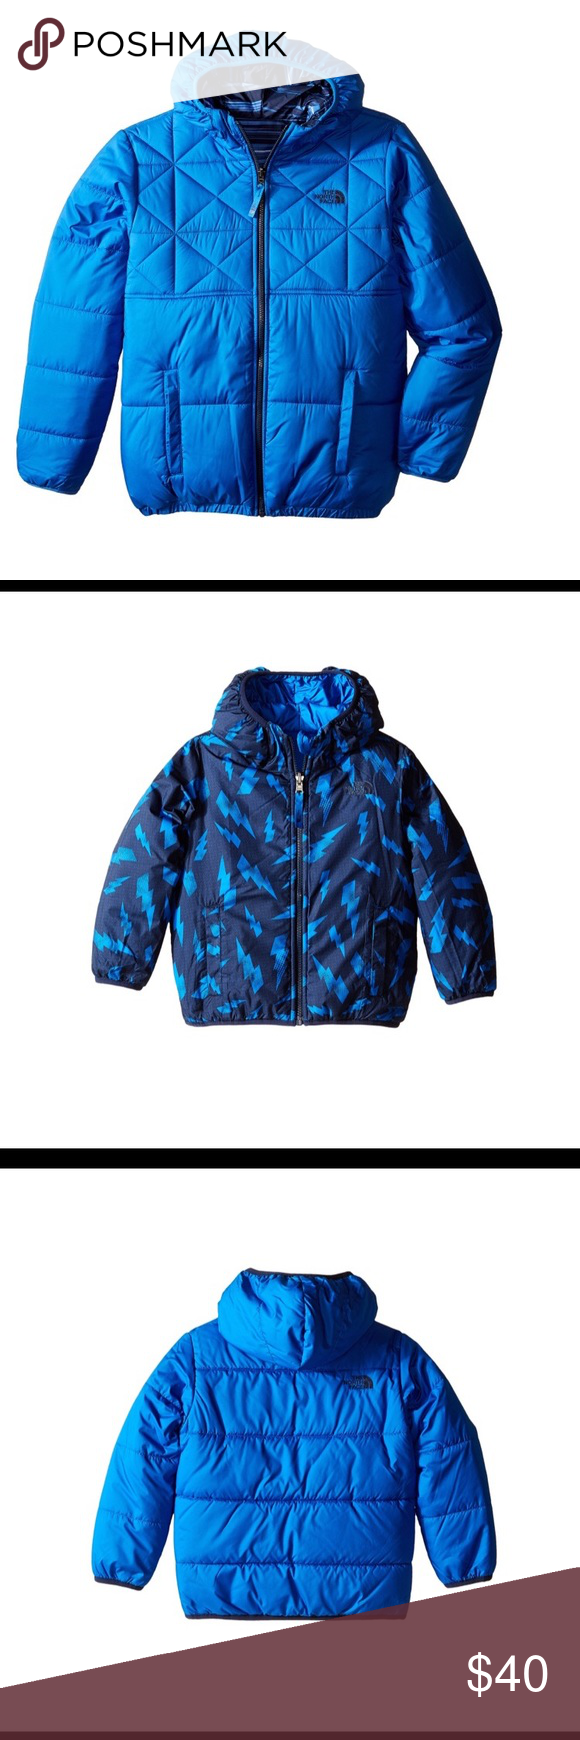 The North Face Boys Peritto Reversible Coat Reversible Coat Boys Winter Coats North Face Jacket [ 1740 x 580 Pixel ]